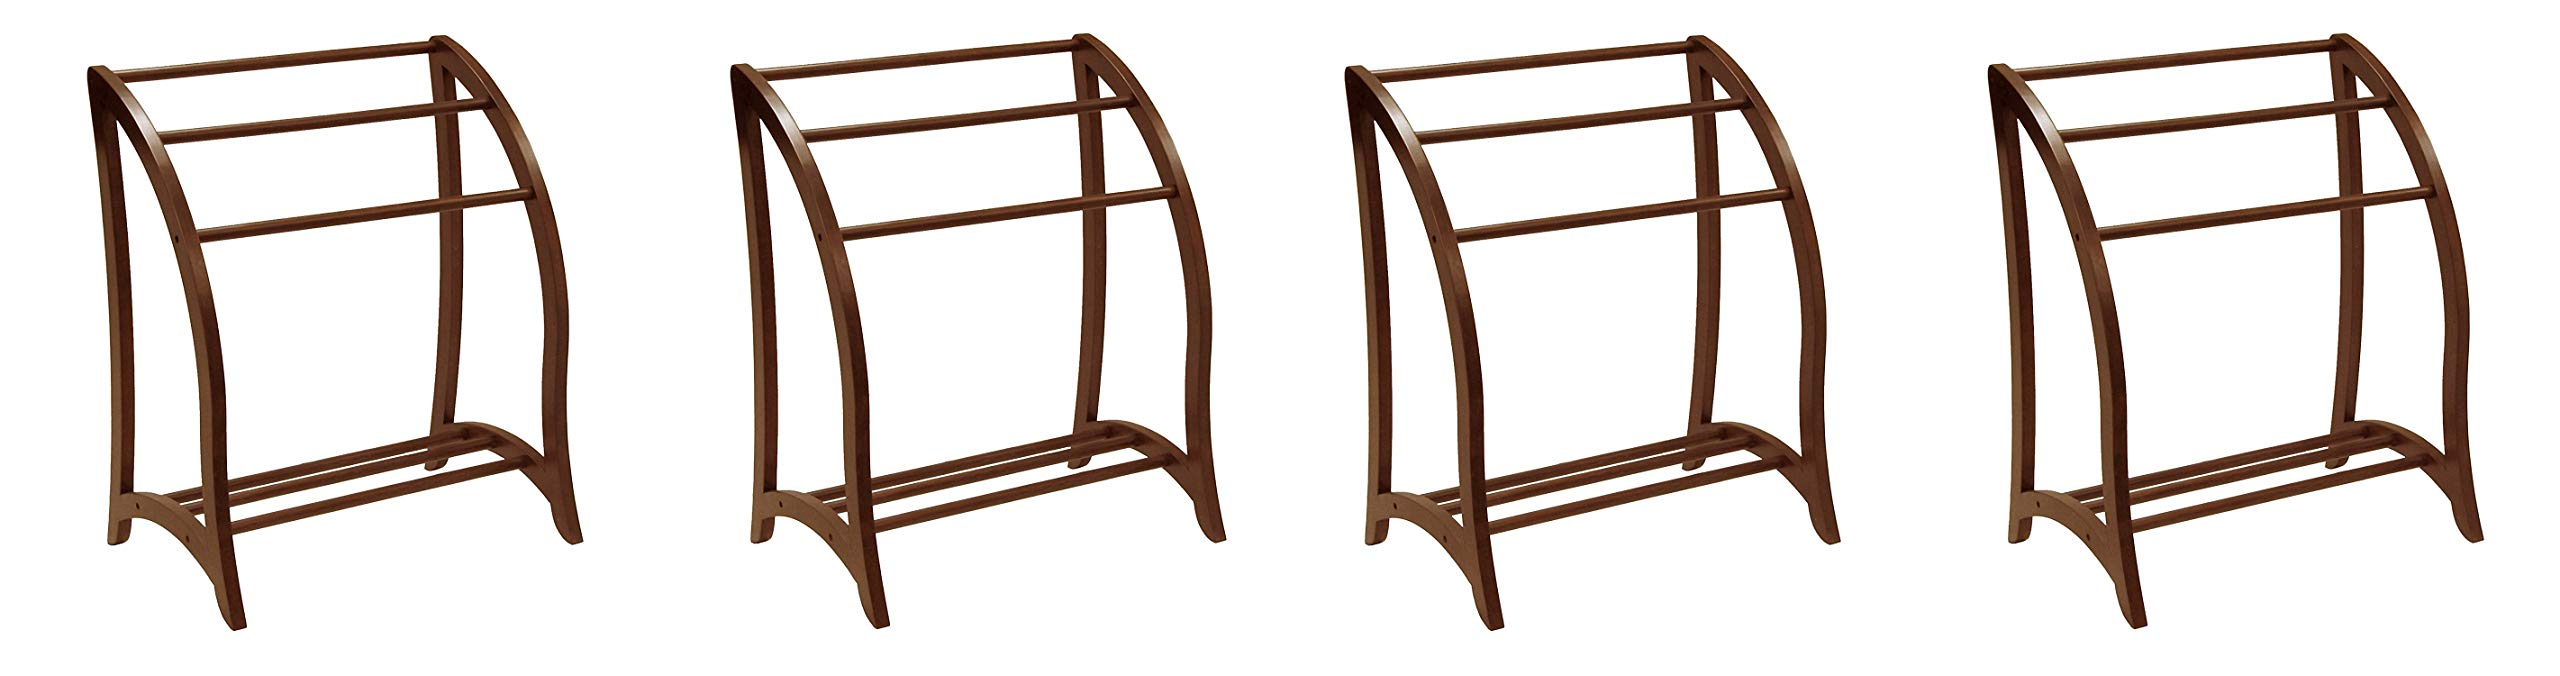 Winsome Wood Blanket Rack, Antique Walnut (Pack of 4)